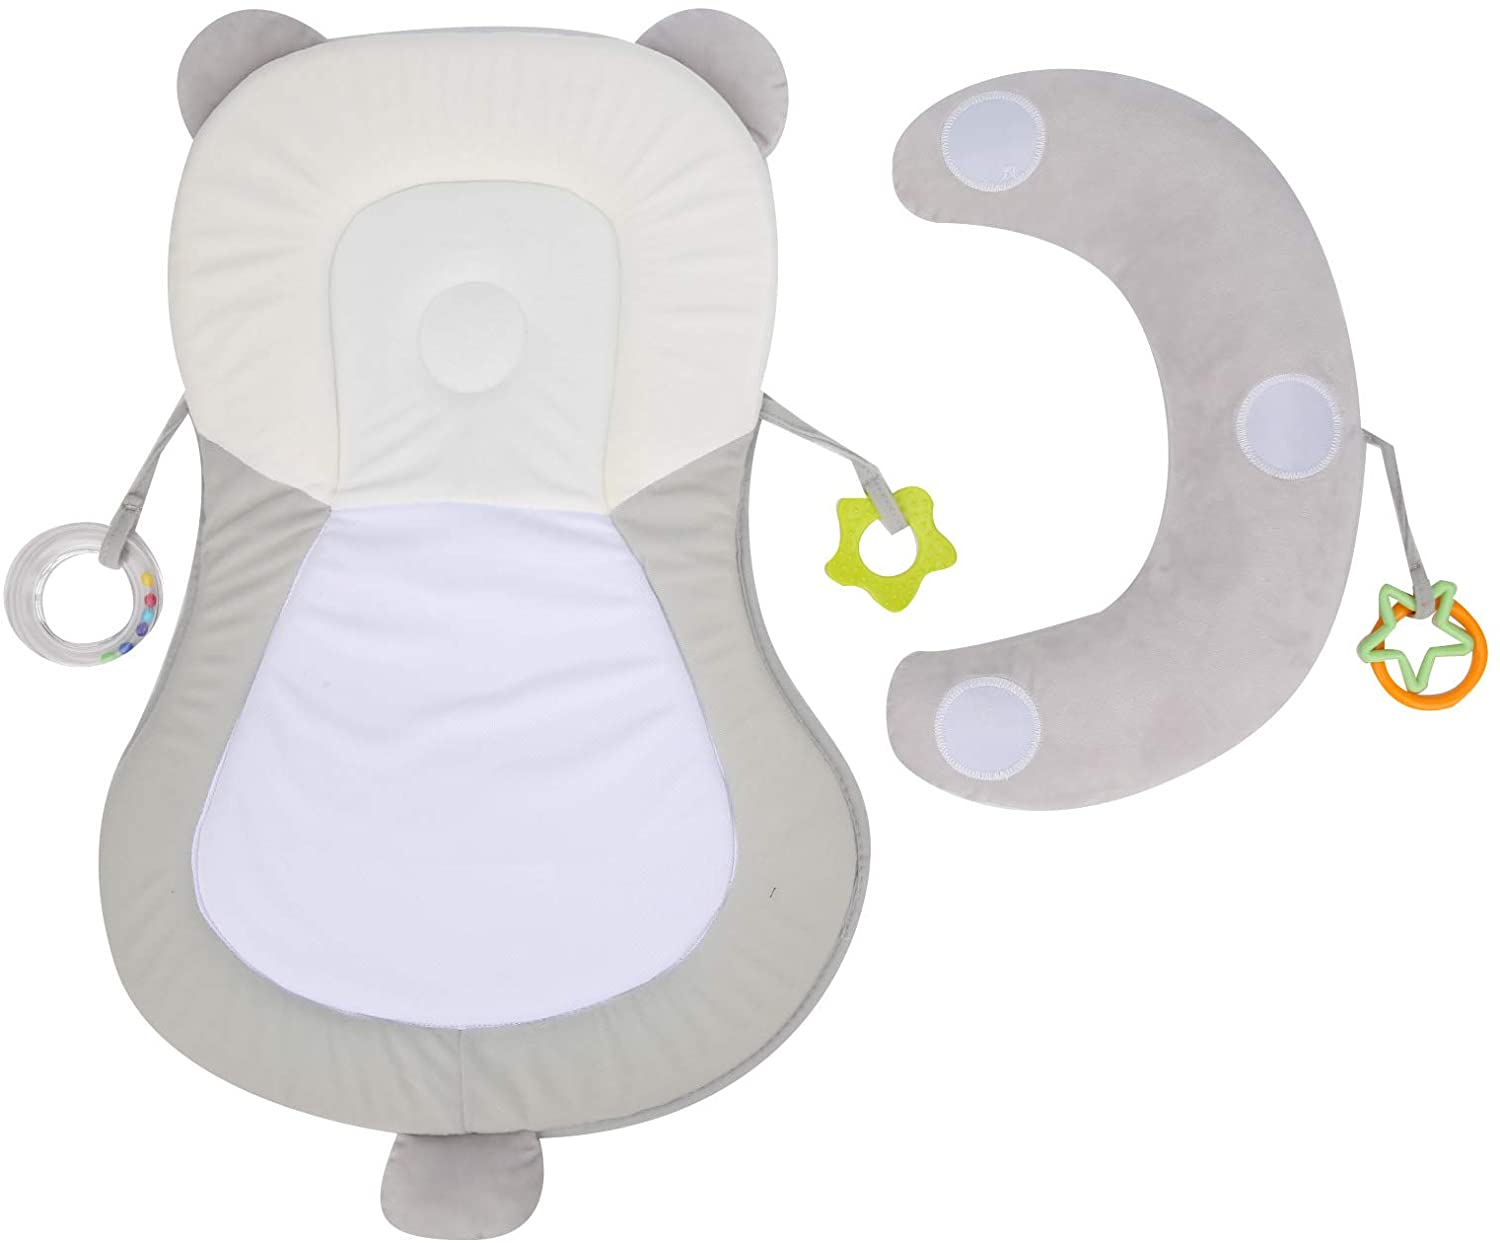 Bicaquu Breathable Baby Head Support Pillow Baby Car Seat Pad for Home Travel